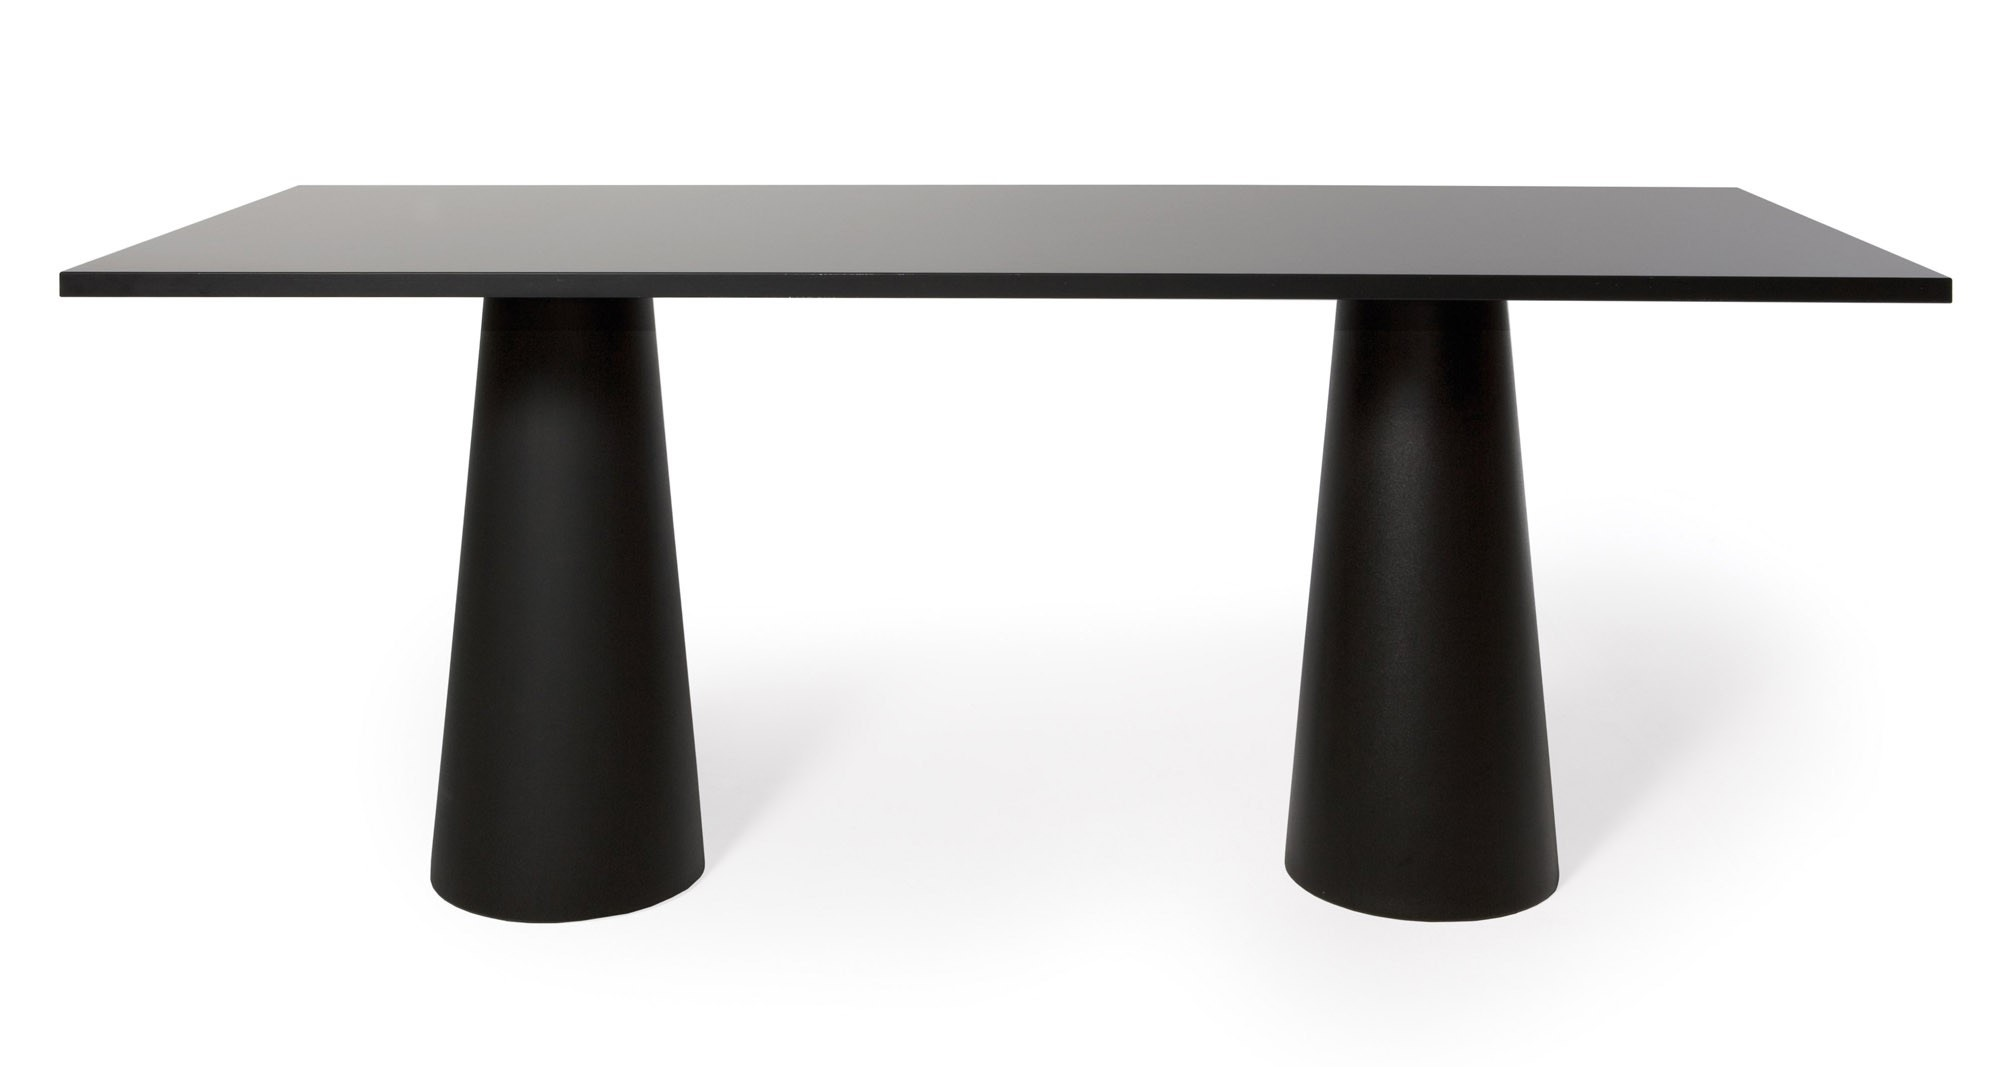 Moooi Container Table with Rectangular 180 x 80 Top